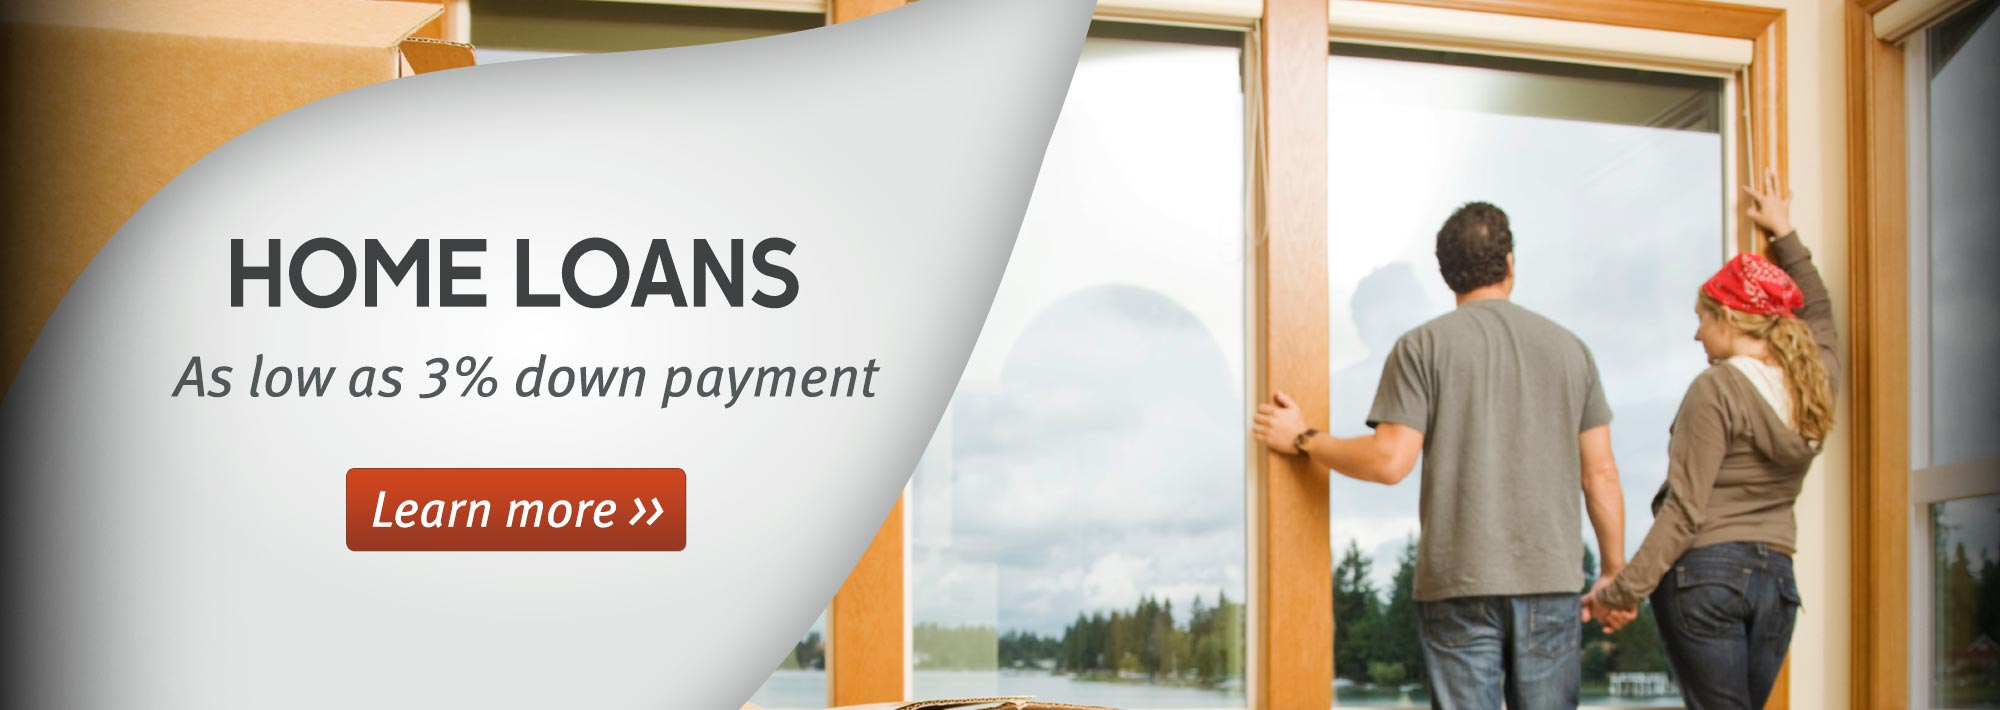 Home Loans: As low as 3% down payment. Learn more.